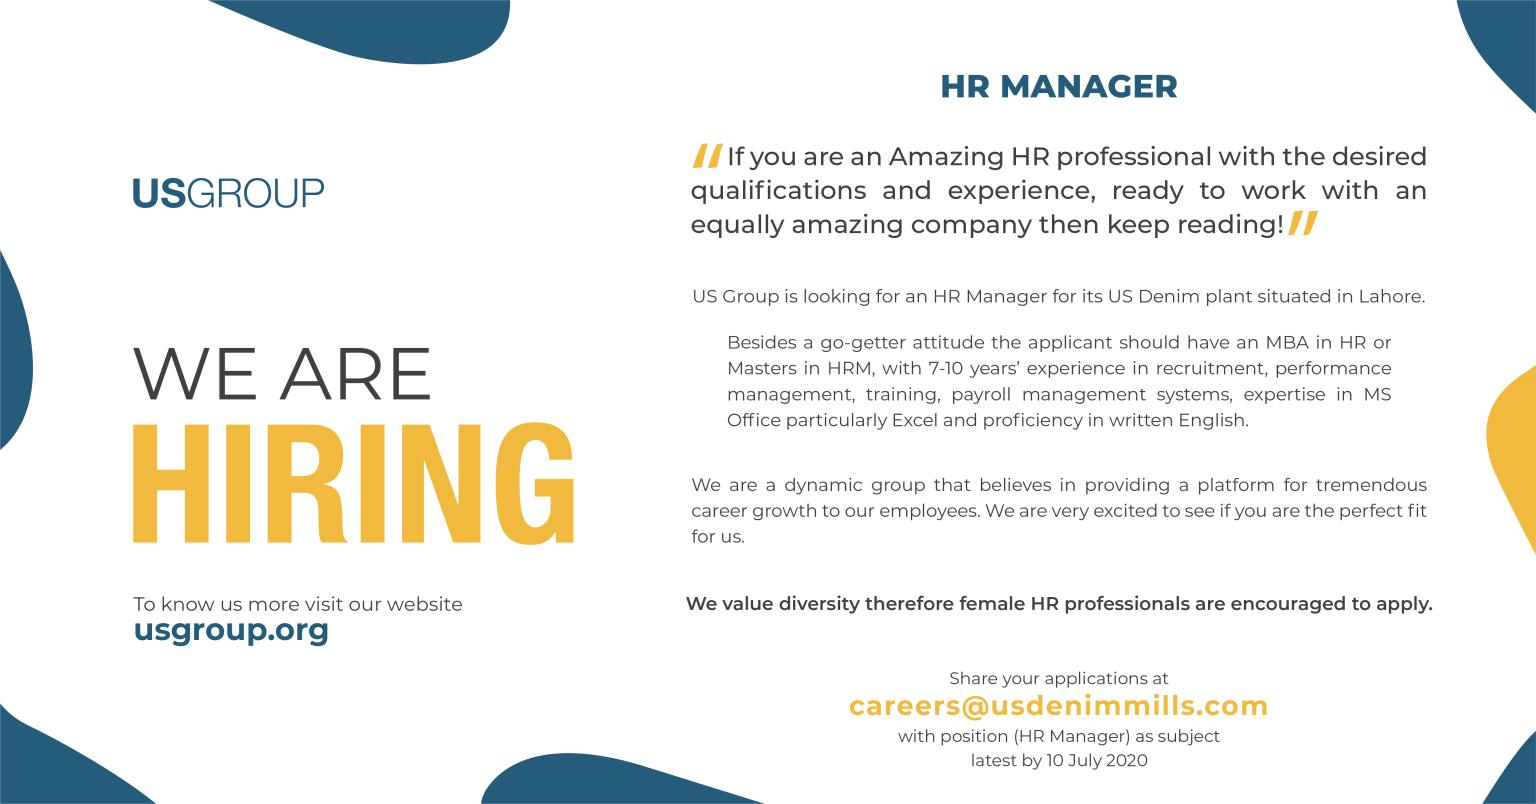 hr-manager-usgroup-lahore